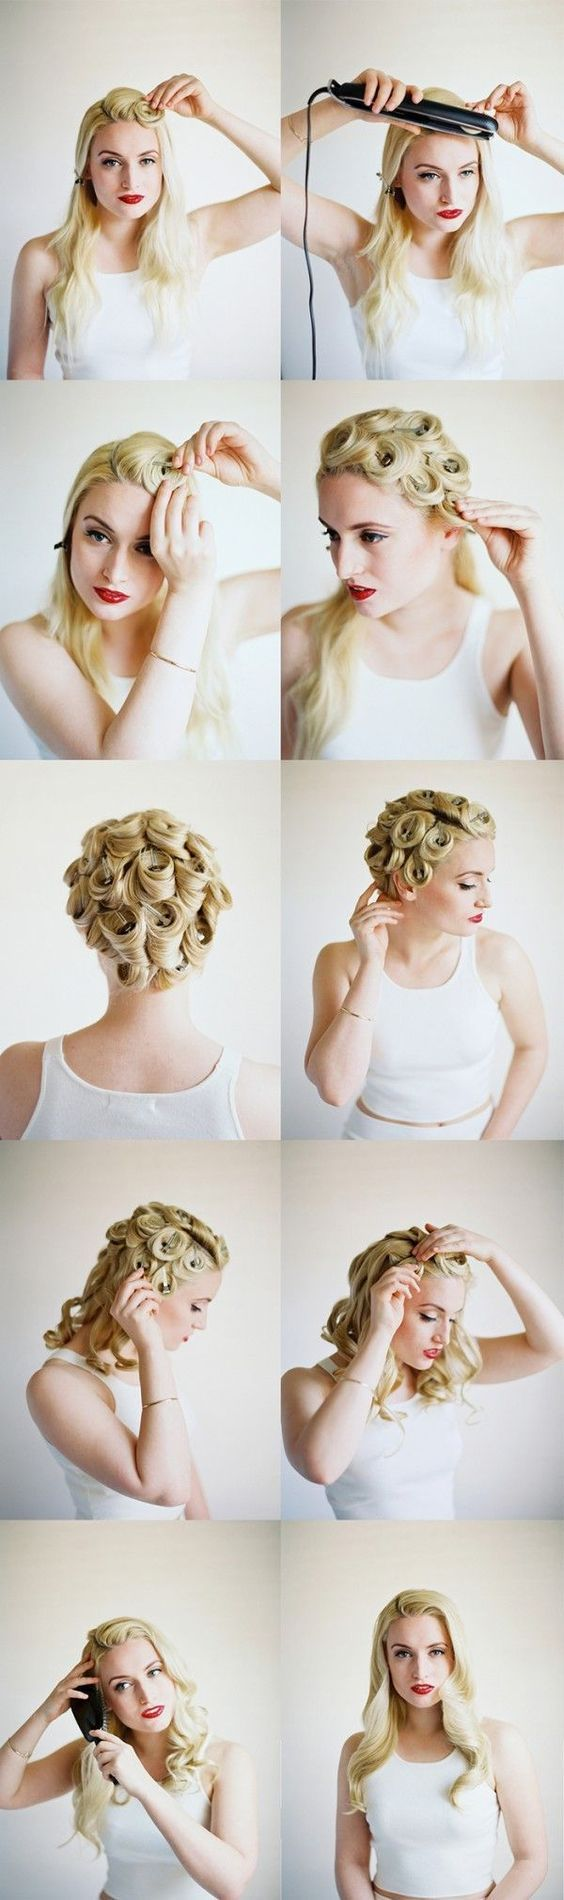 221 best Top Charming HairStyles images on Pinterest | Wedding hair ...